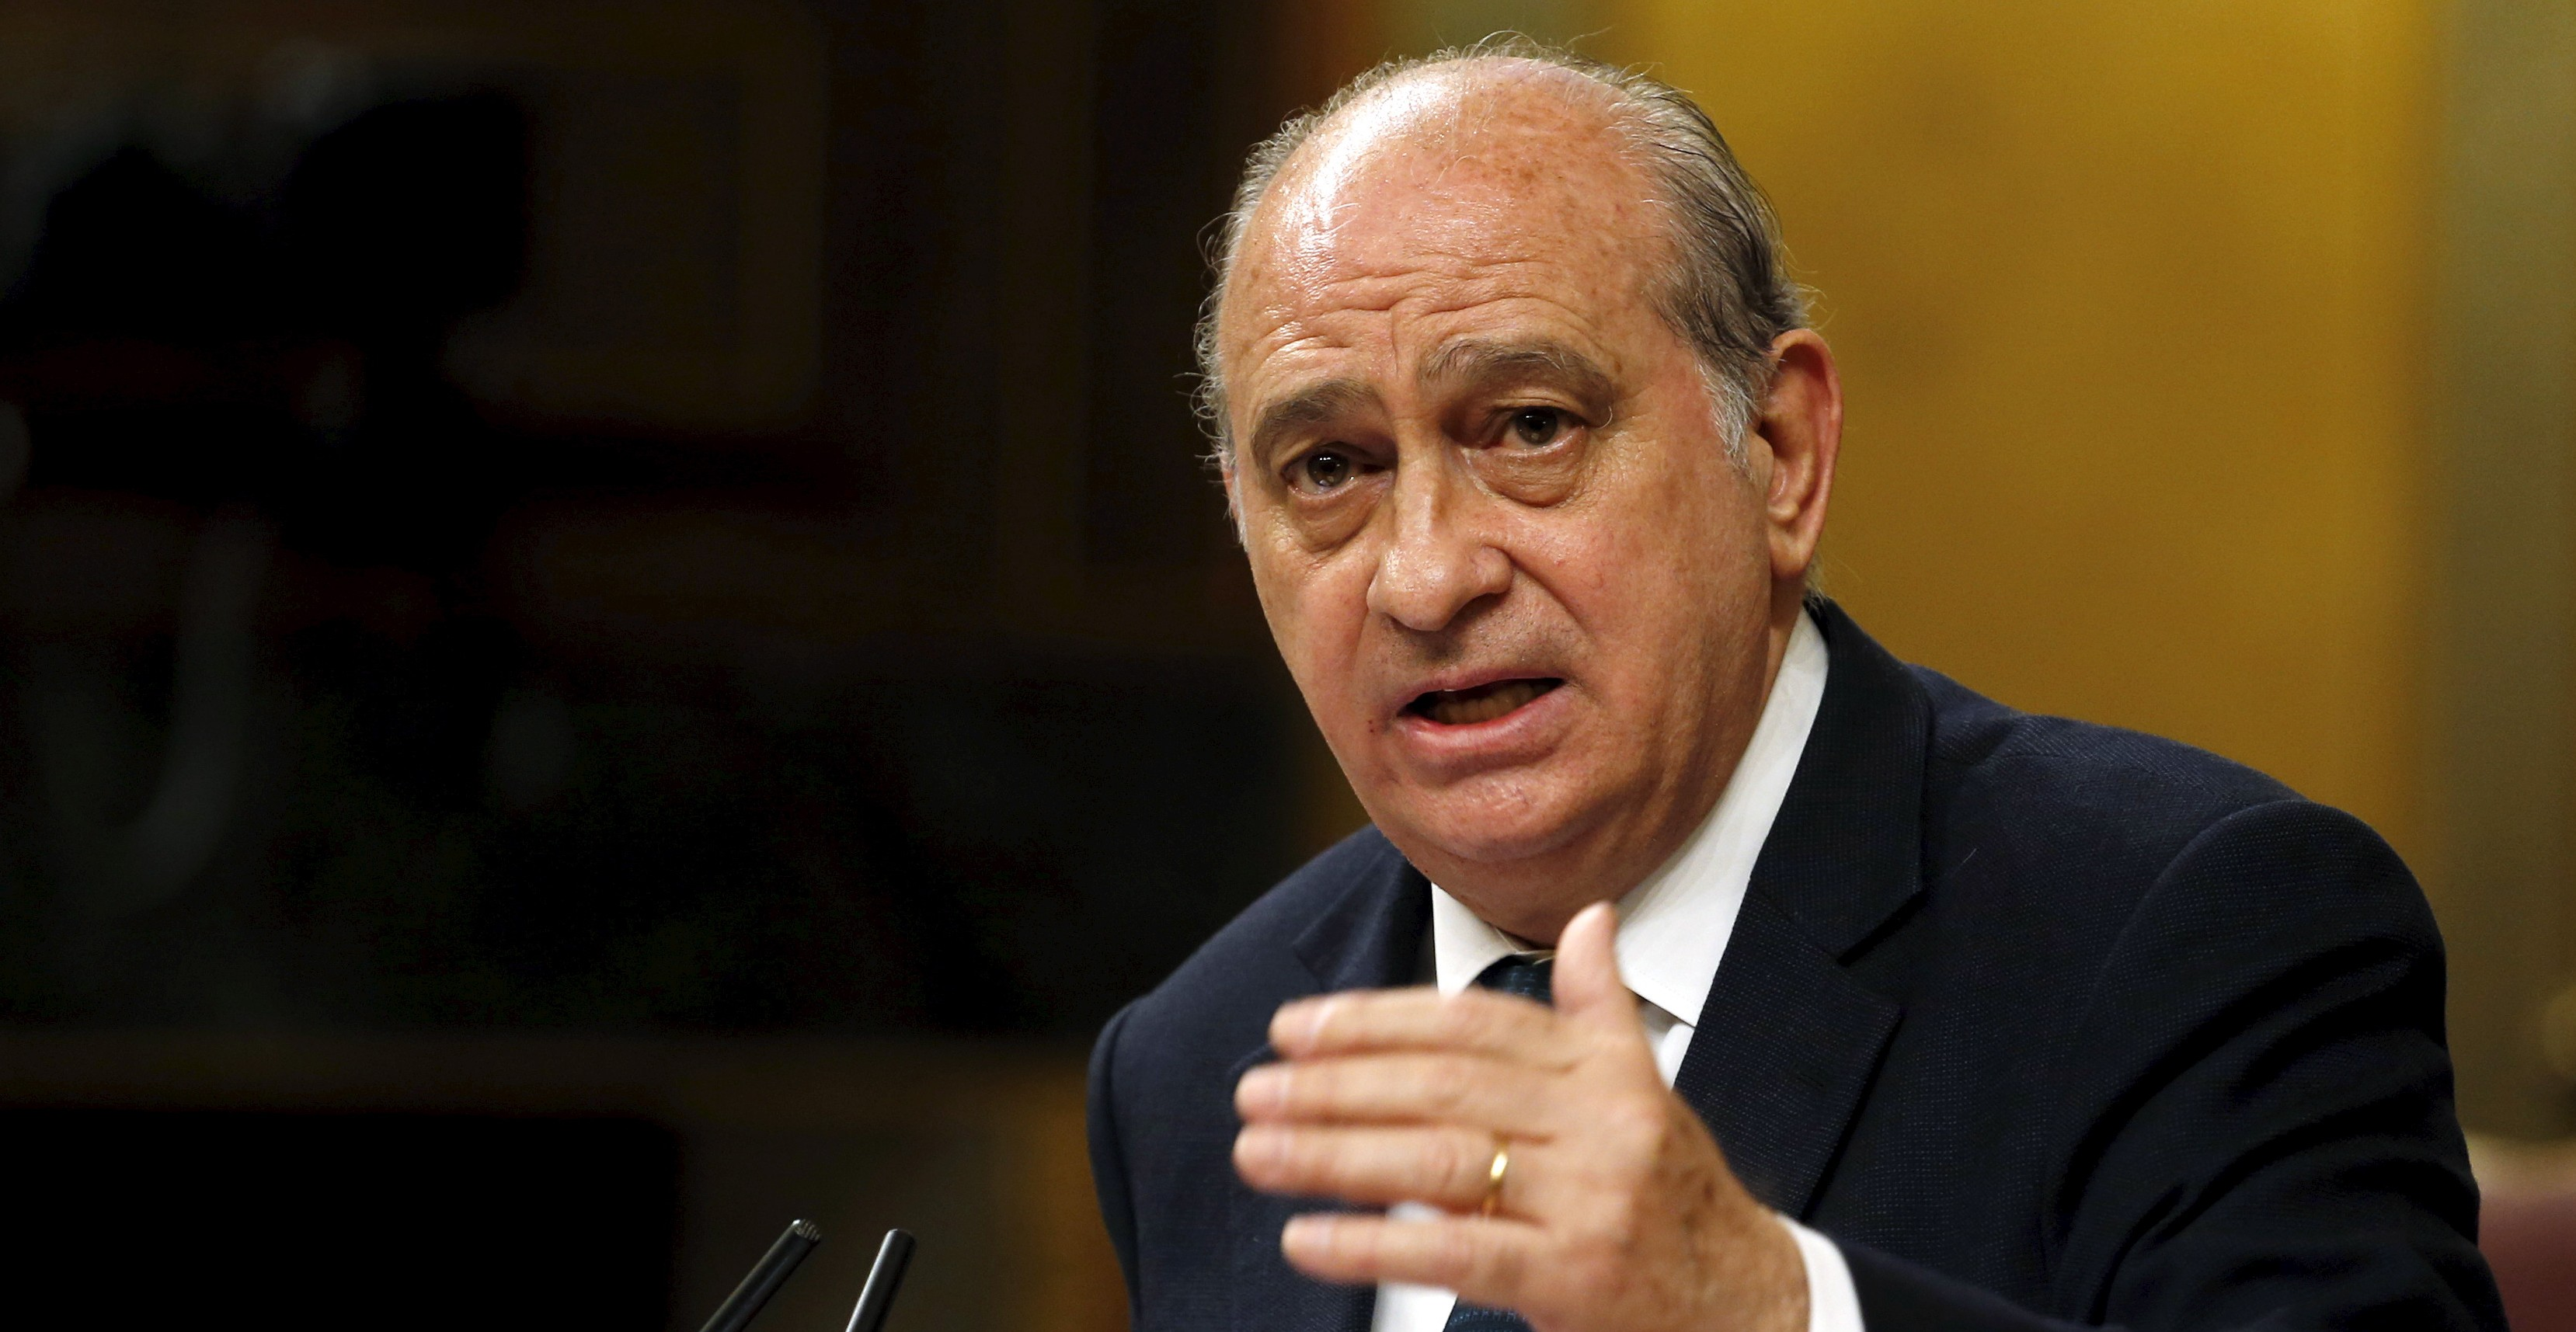 """Spain's Interior Minister Jorge Fernandez Diaz delivers a speech during a debate of the Spanish government's new security law, known as """"Ley Mordaza"""" (""""Gag Law""""), at Parliament in Madrid March 26, 2015. The bill has been approved by the conservative-led Spanish parliament today, despite heavy opposition from some politicians and activist groups, who say the law violates the right to protest, limits freedom of expression and gives more power to police. REUTERS/Juan Medina - RTR4V1BU"""